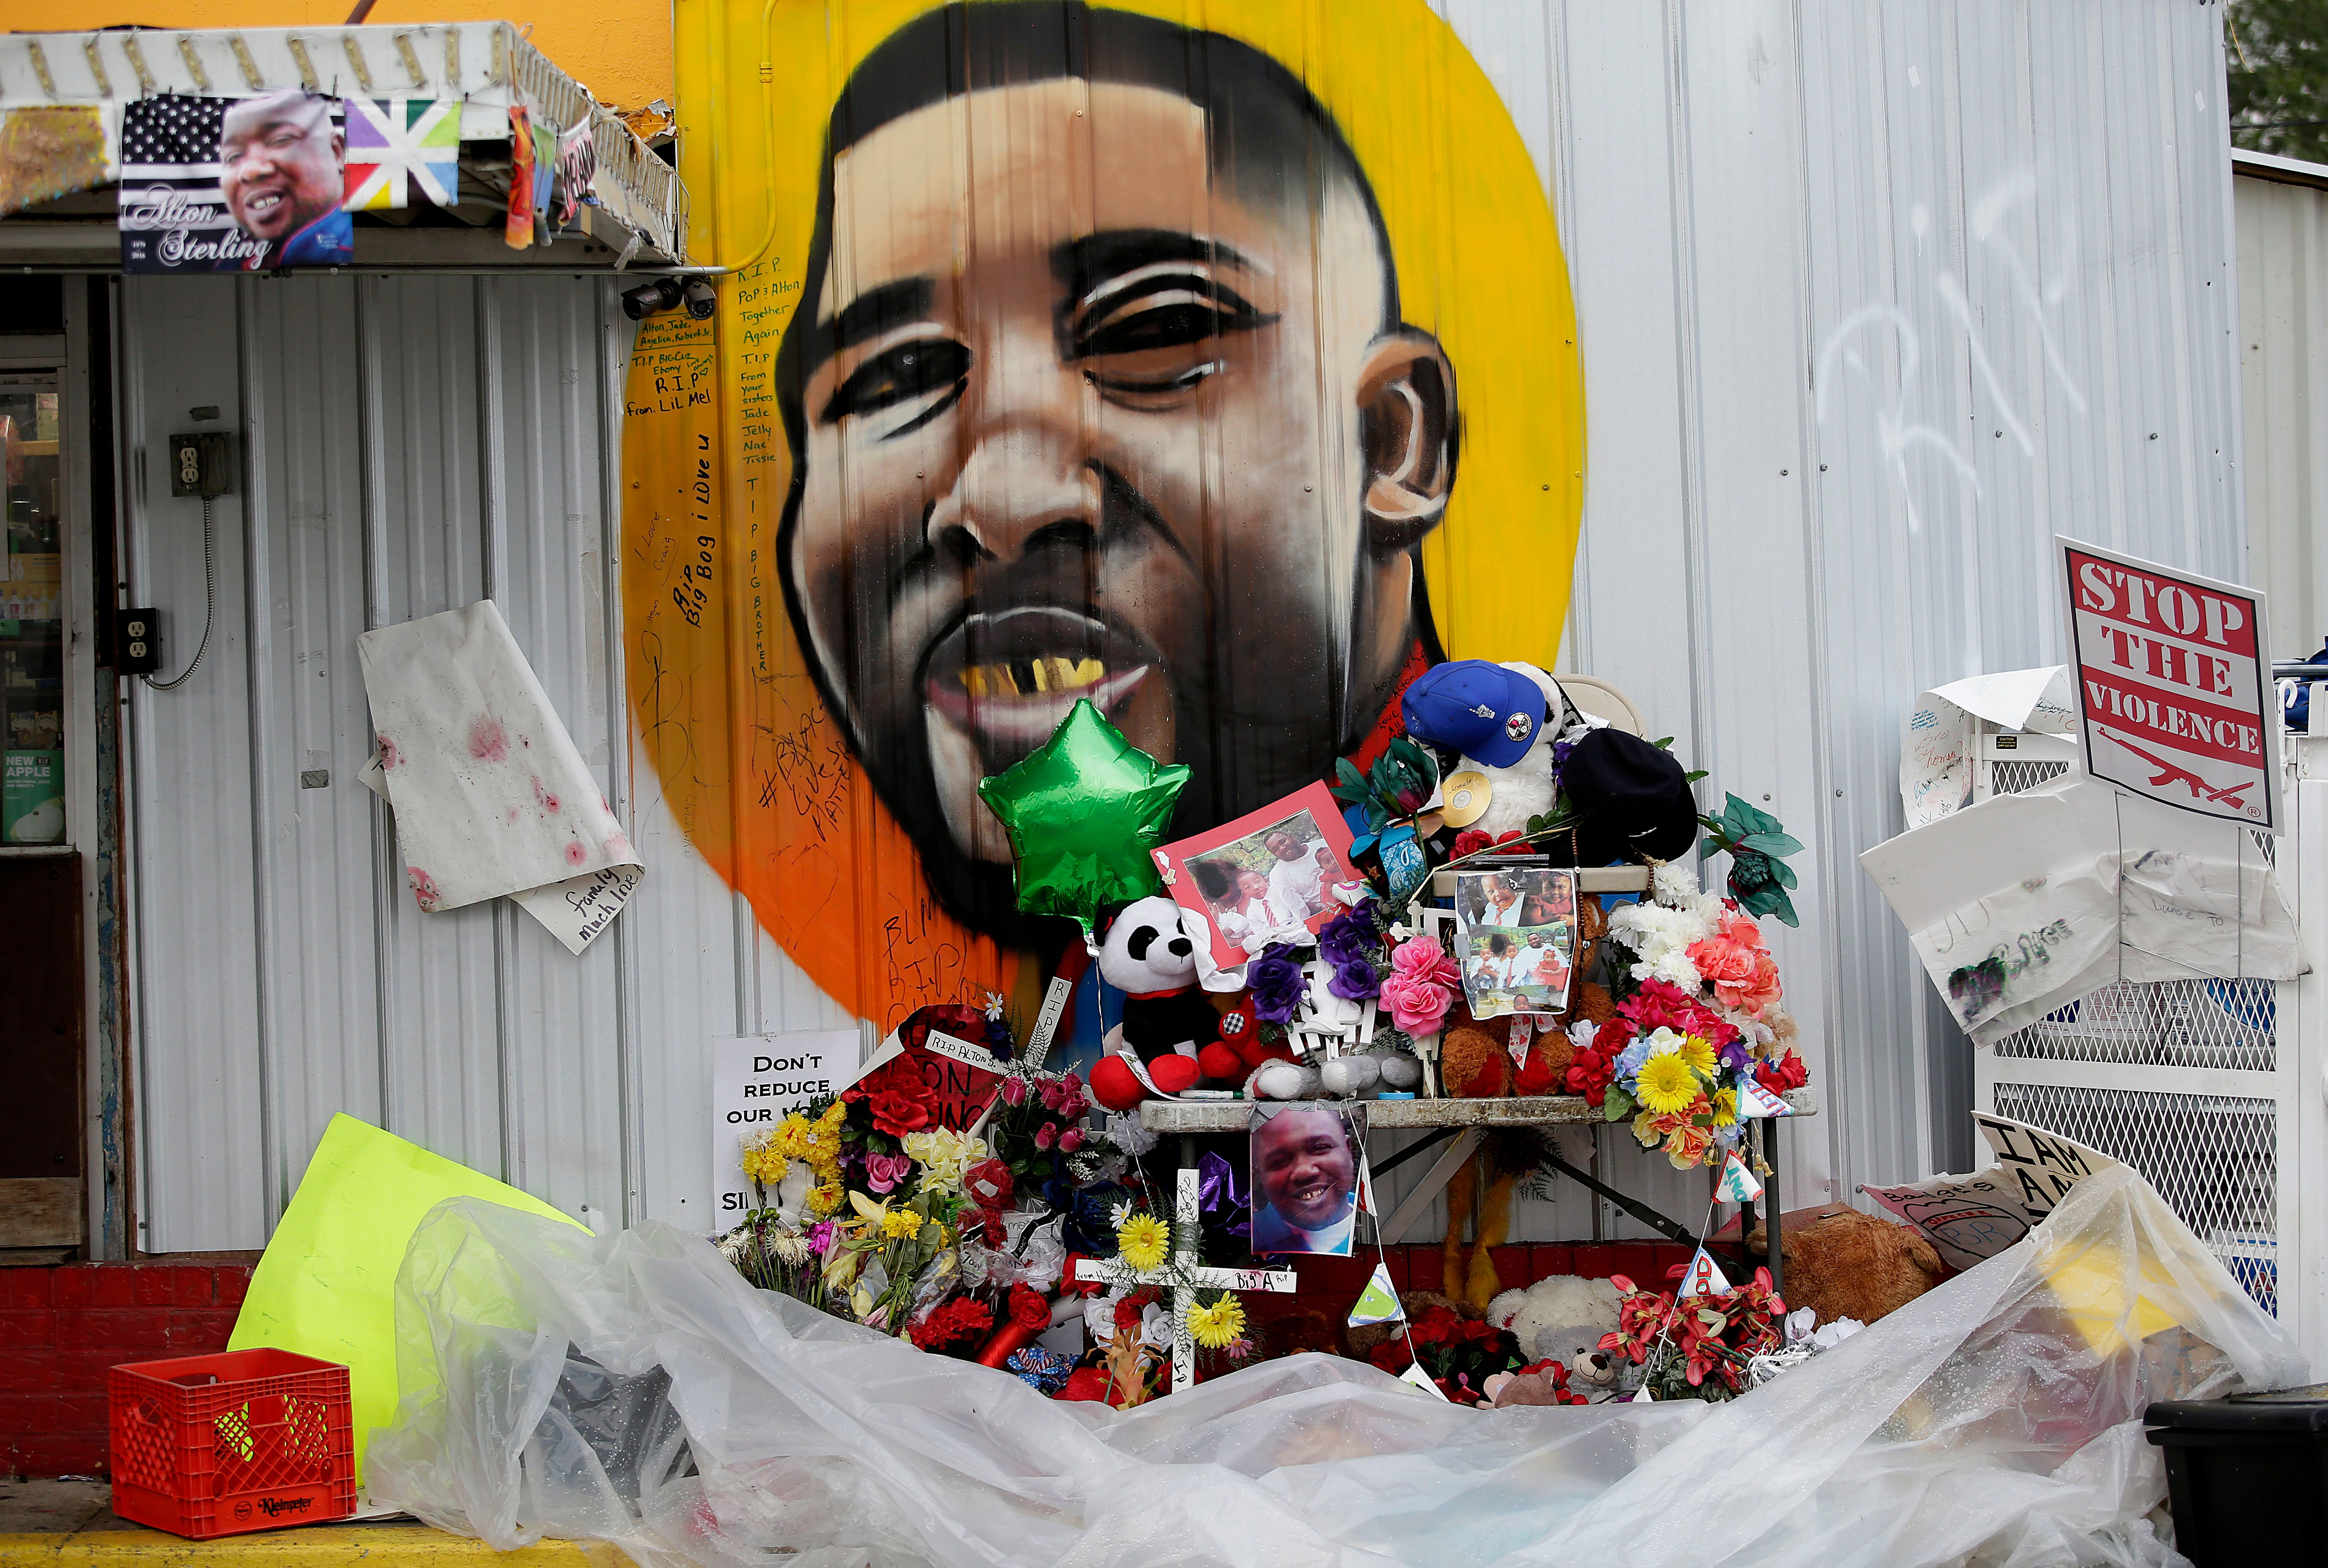 A makeshift memorial for the fatal police shooting of Alton Sterling outside the Triple S Food Mart next to a mural of Sterli